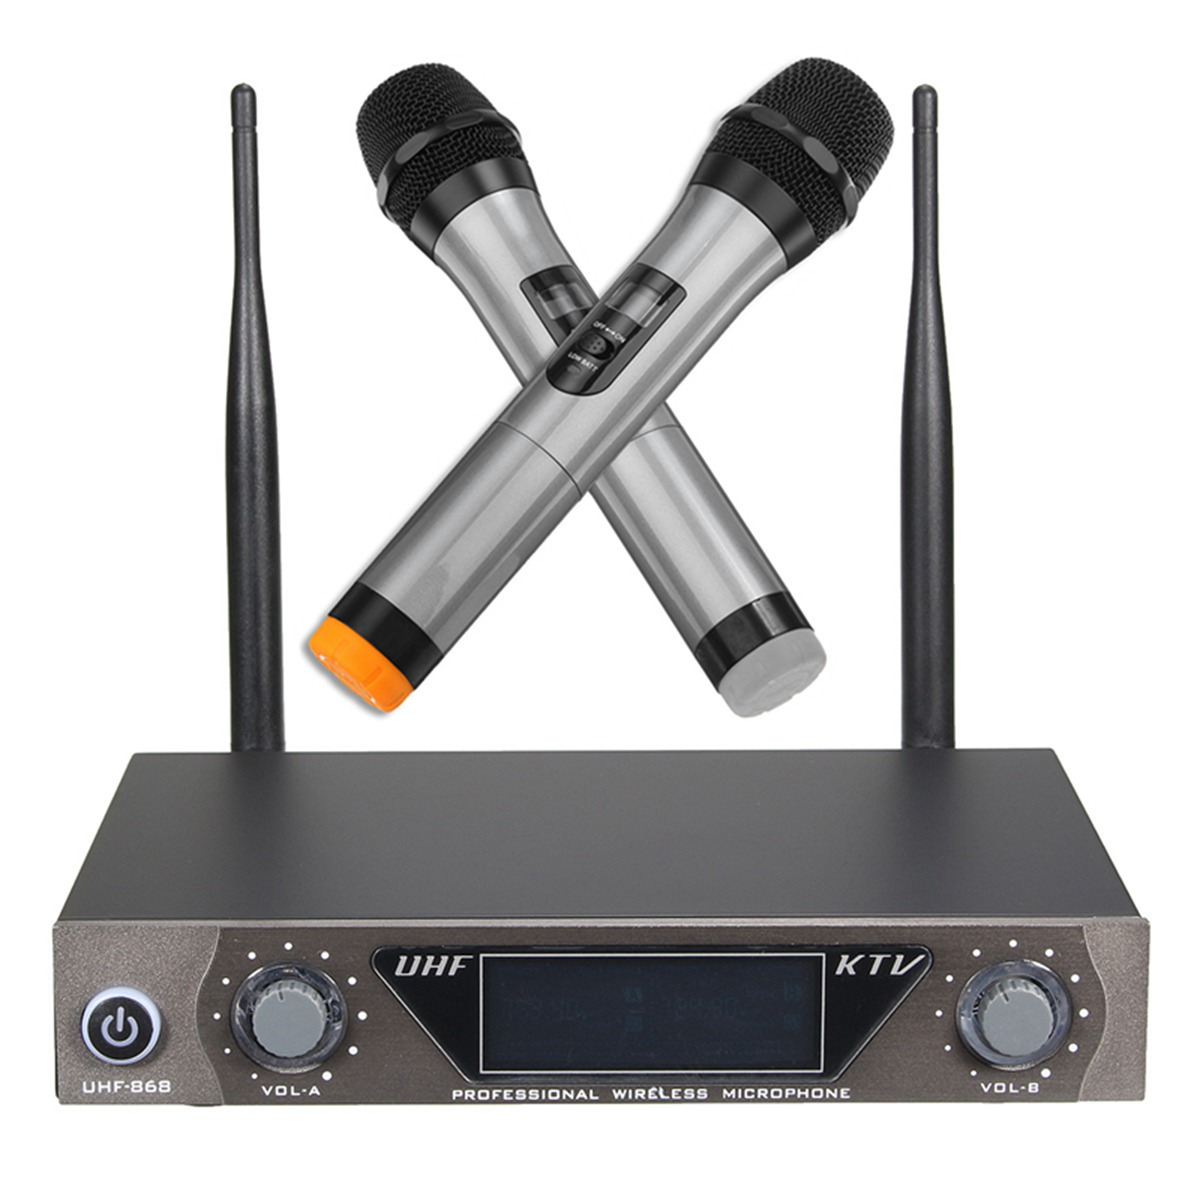 LEORY LCD 10m Dual Channels UHF Wireless Microphone System Cordless 2 Handheld Mic Transmitter Microphone for Karaoke KTV Bar free shipping uhf professional s24 b 58 wireless microphone cordless karaoke system with handheld transmitter band r5 800 820mhz